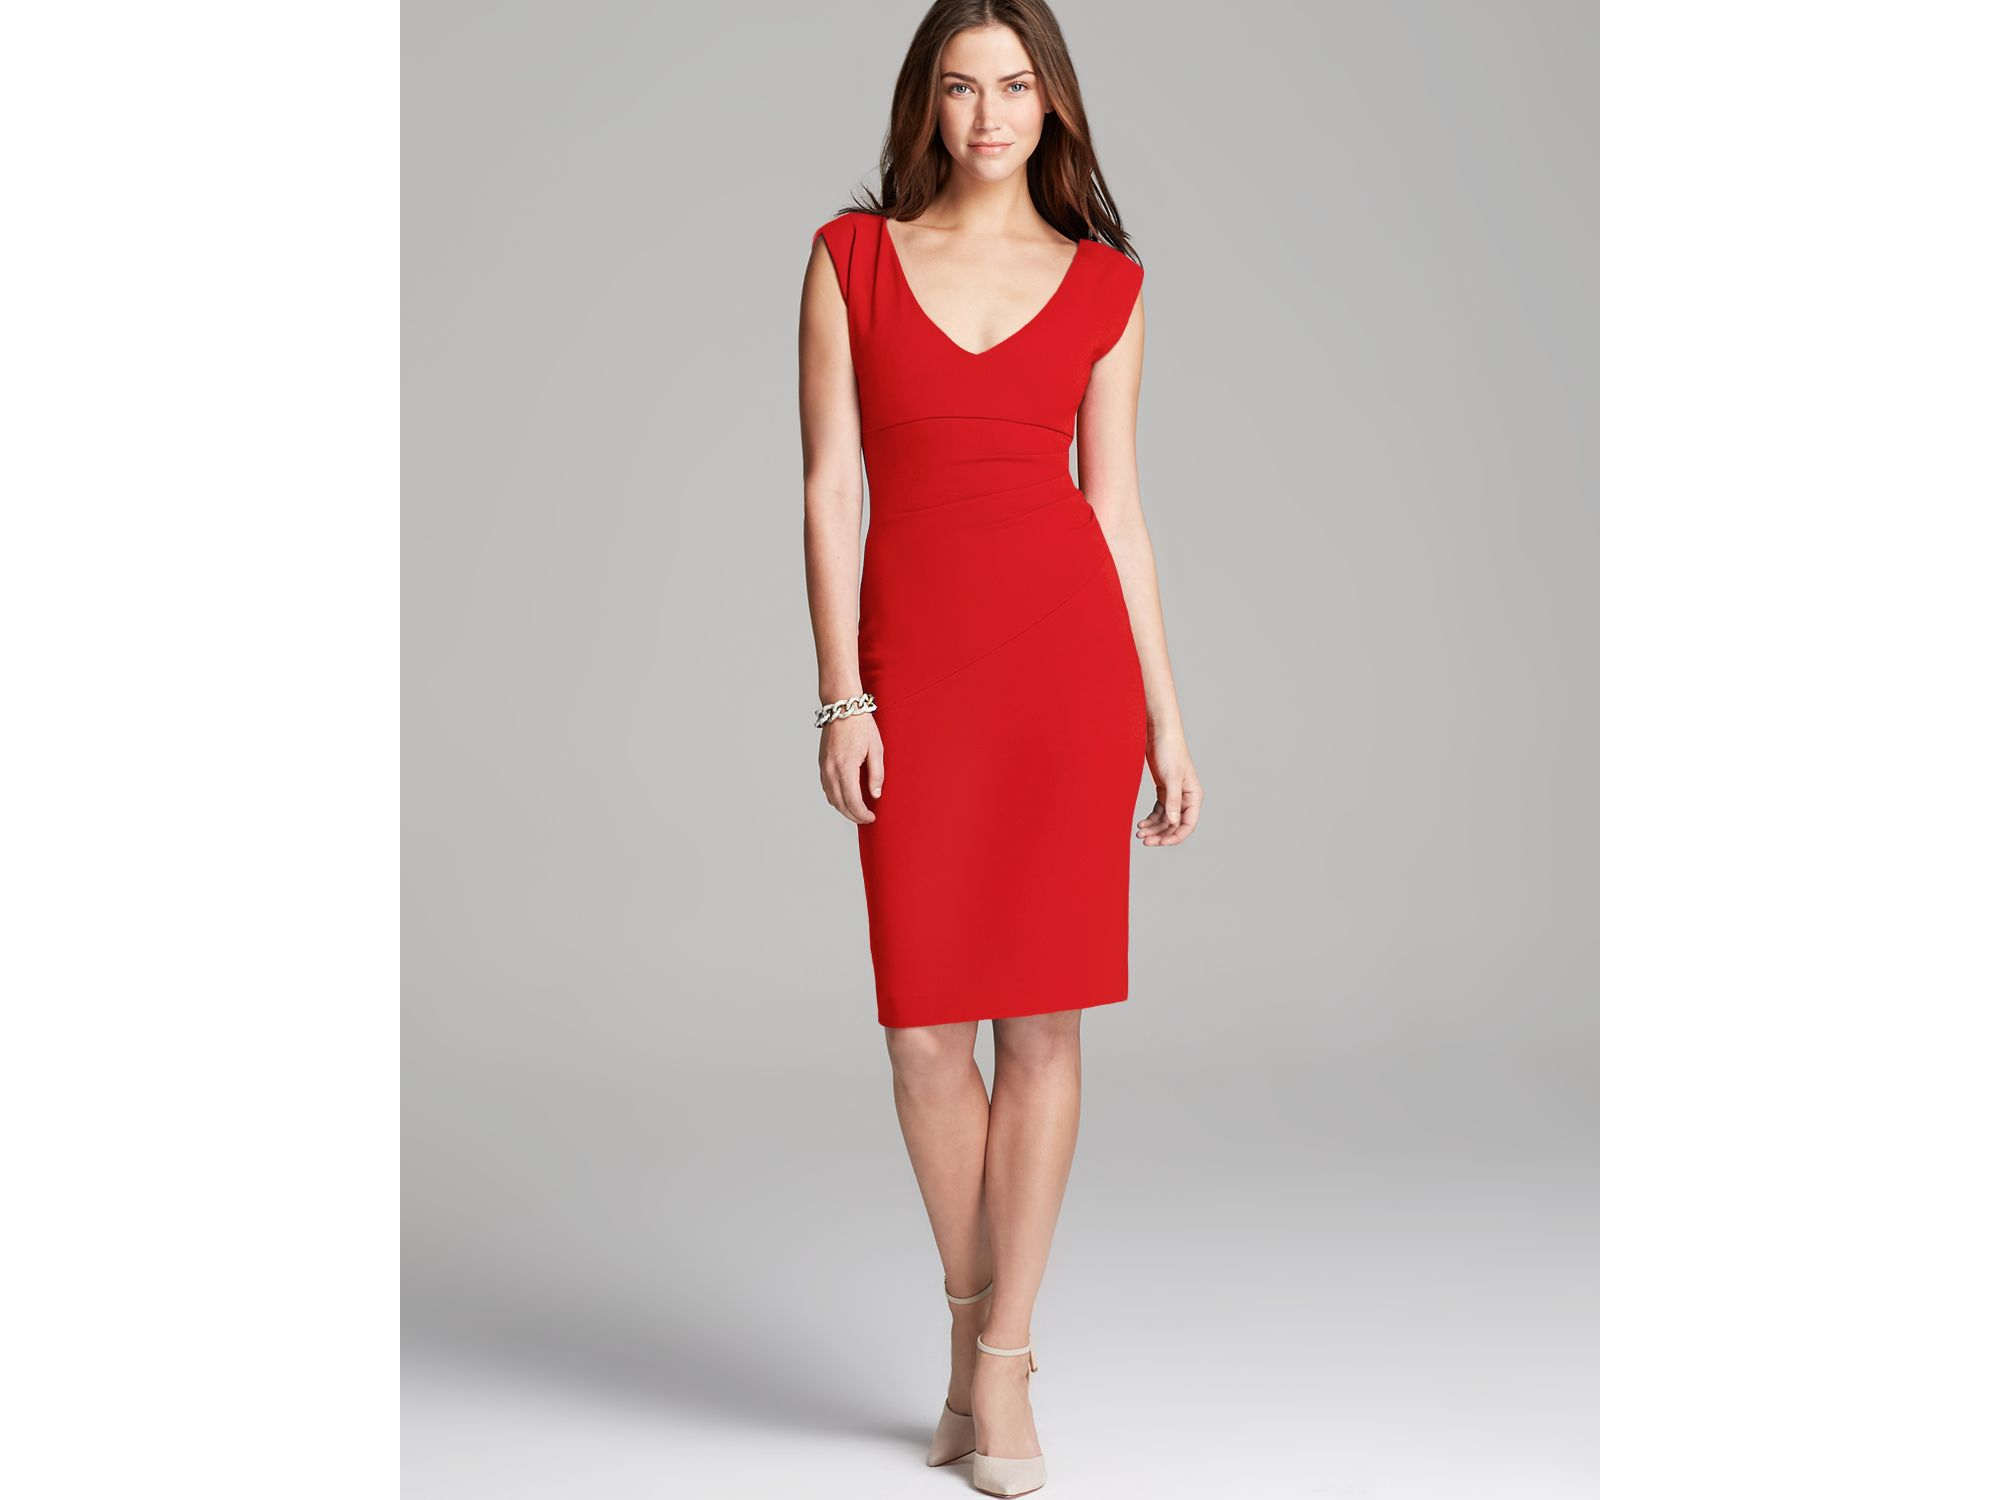 Diane von furstenberg Bevin Dress in Red | Lyst